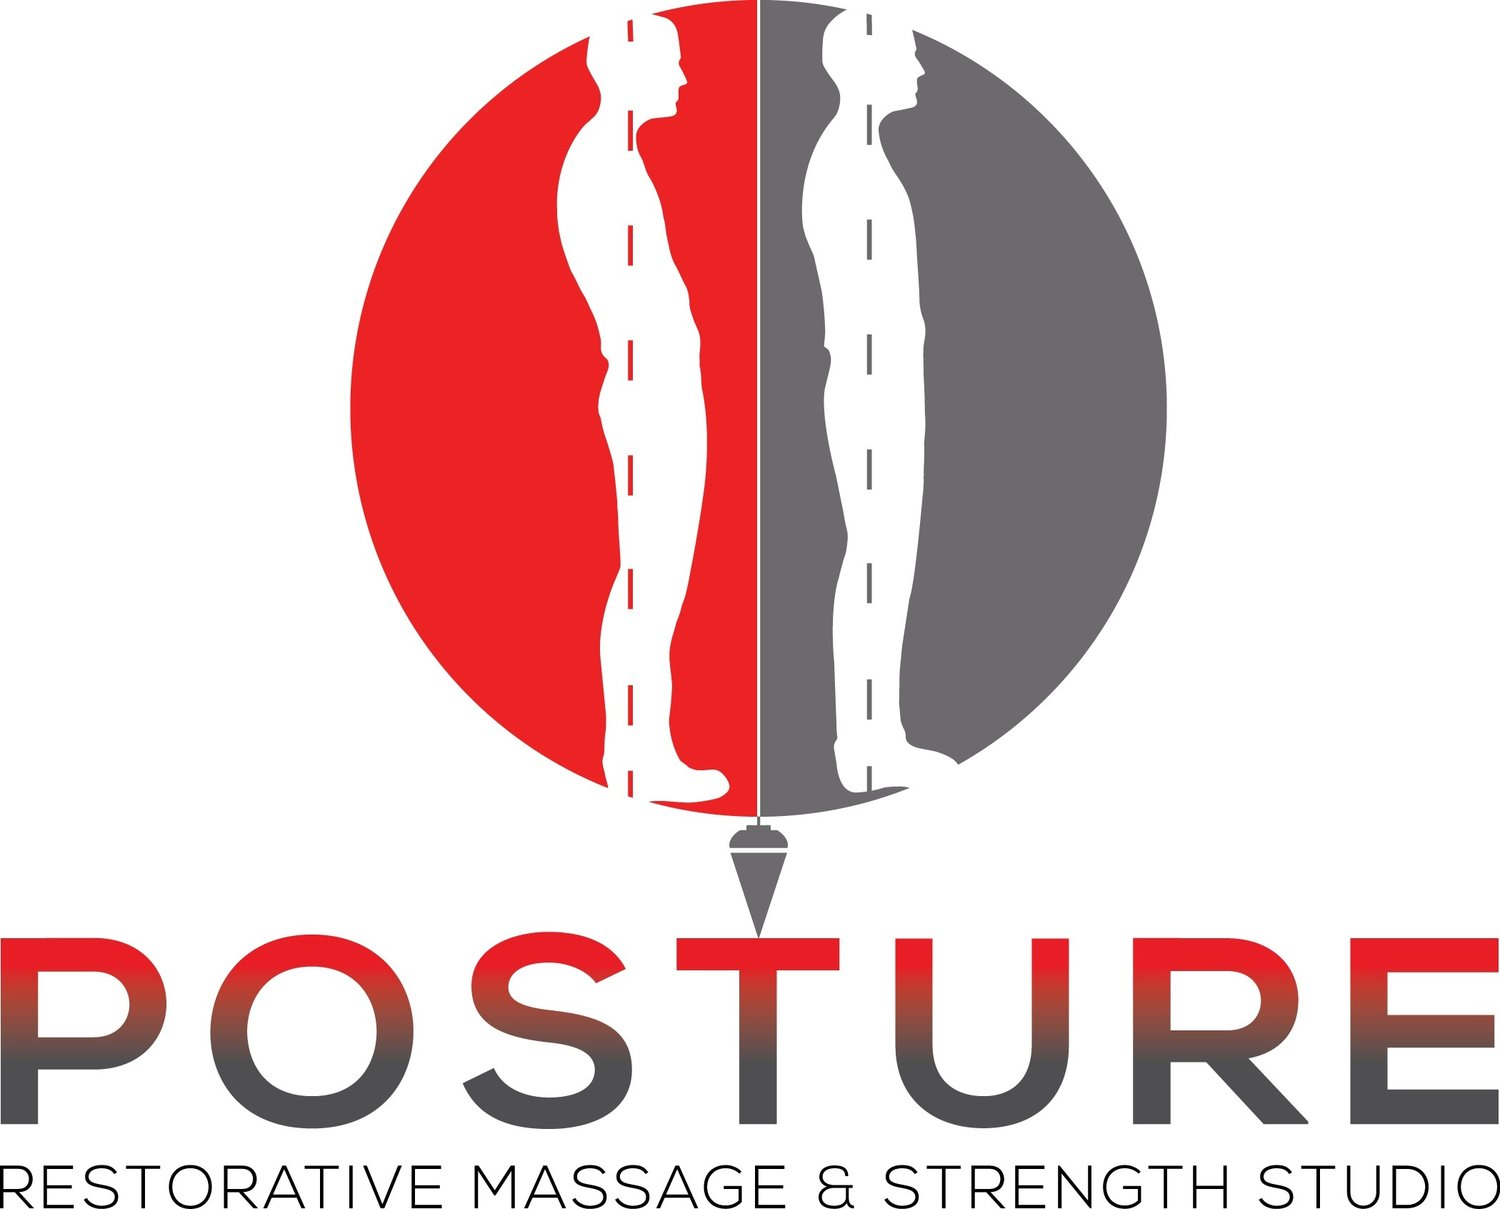 Posture Restorative Massage and Strength Studio